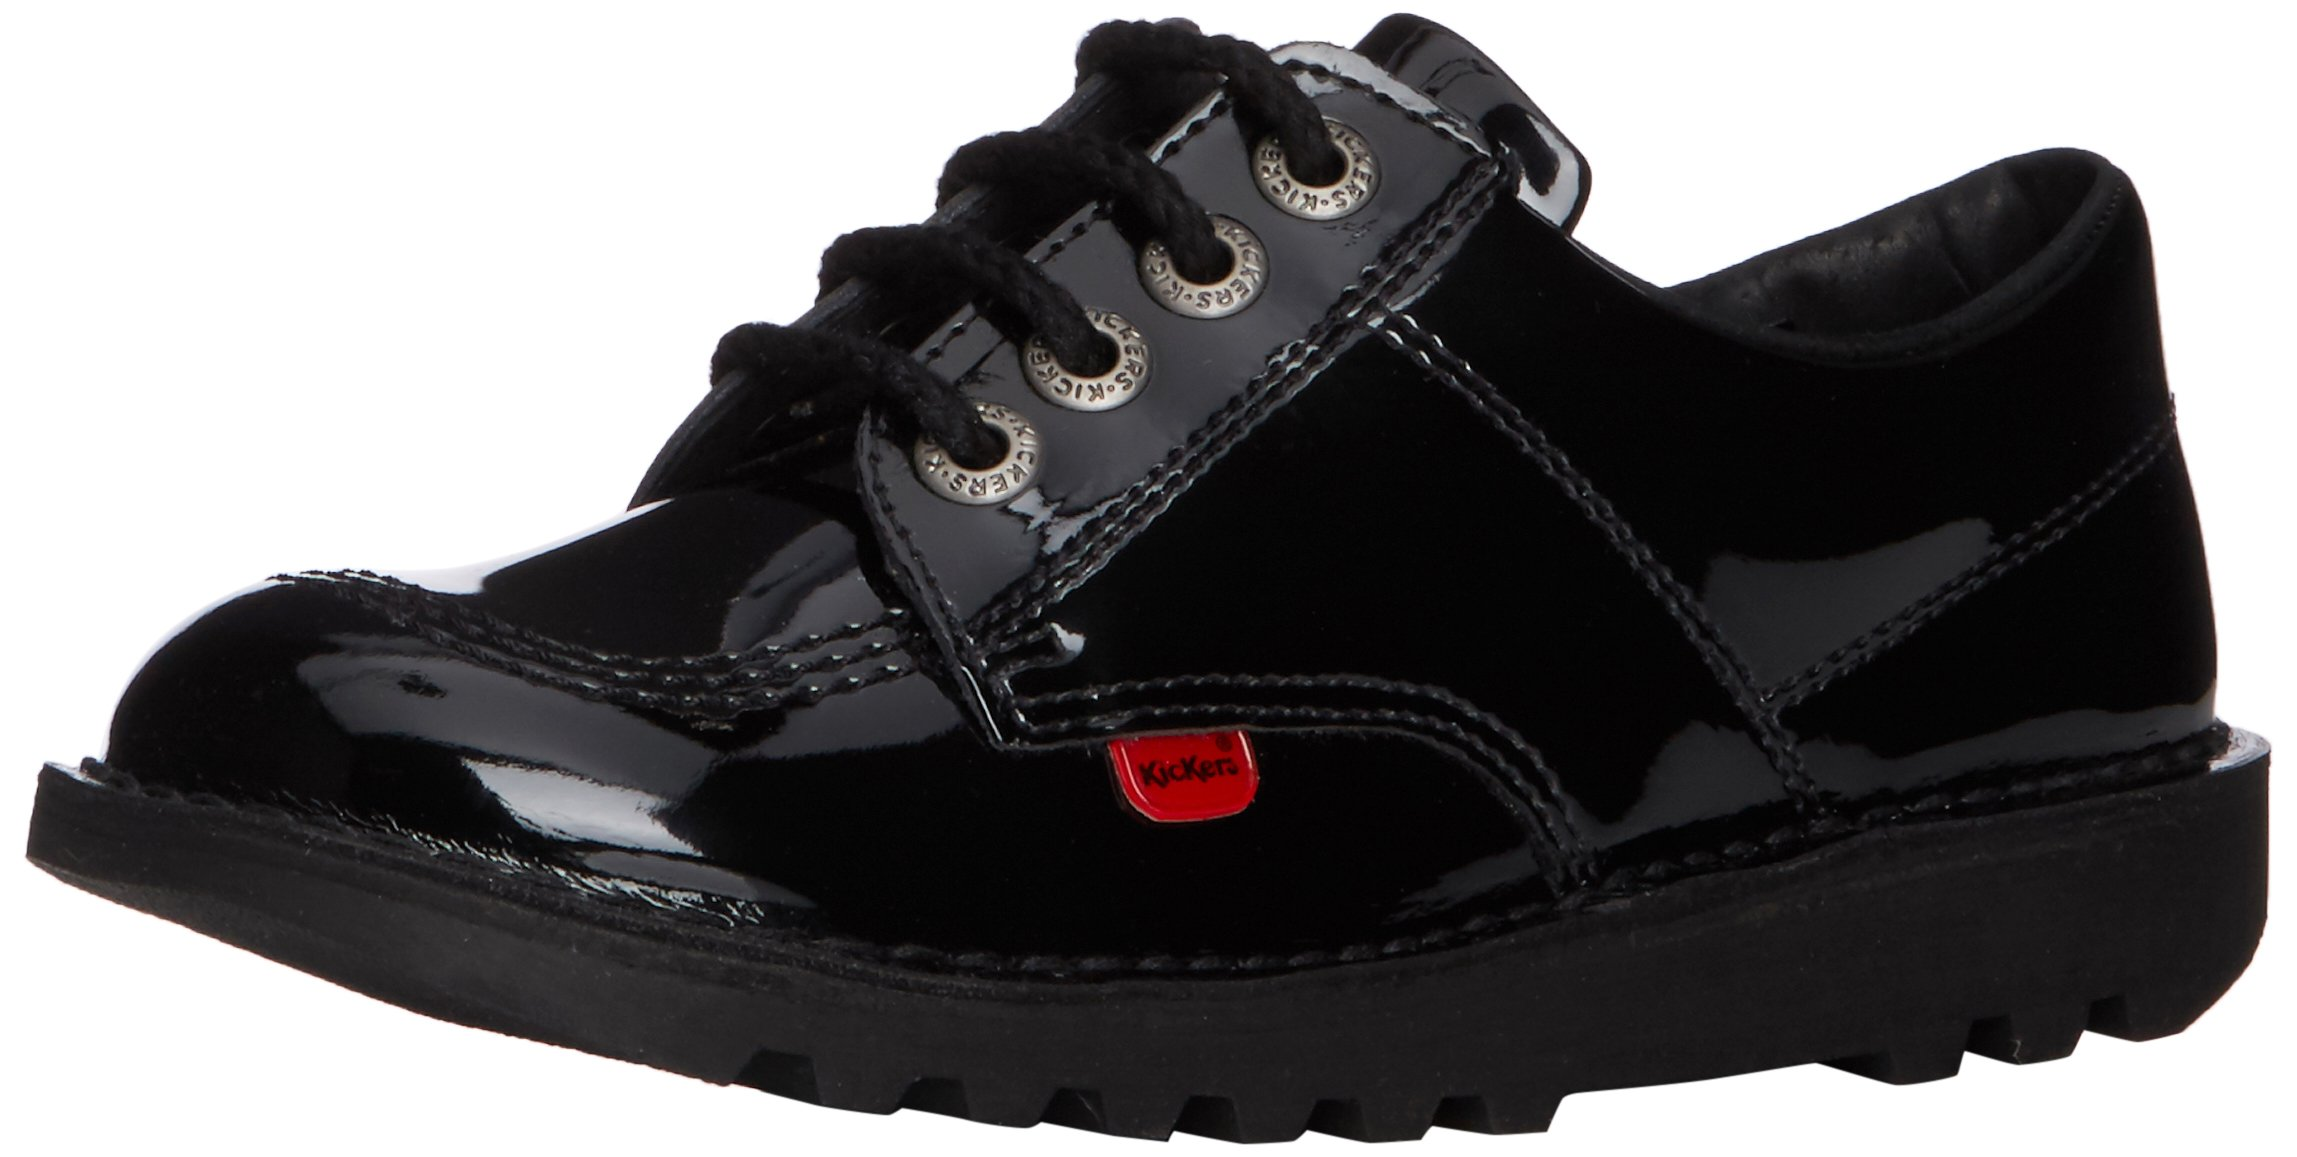 Kickers Womens Kick Lo Core Lace Up Work Office Patent Black Shoes - Black/Black - 8.5